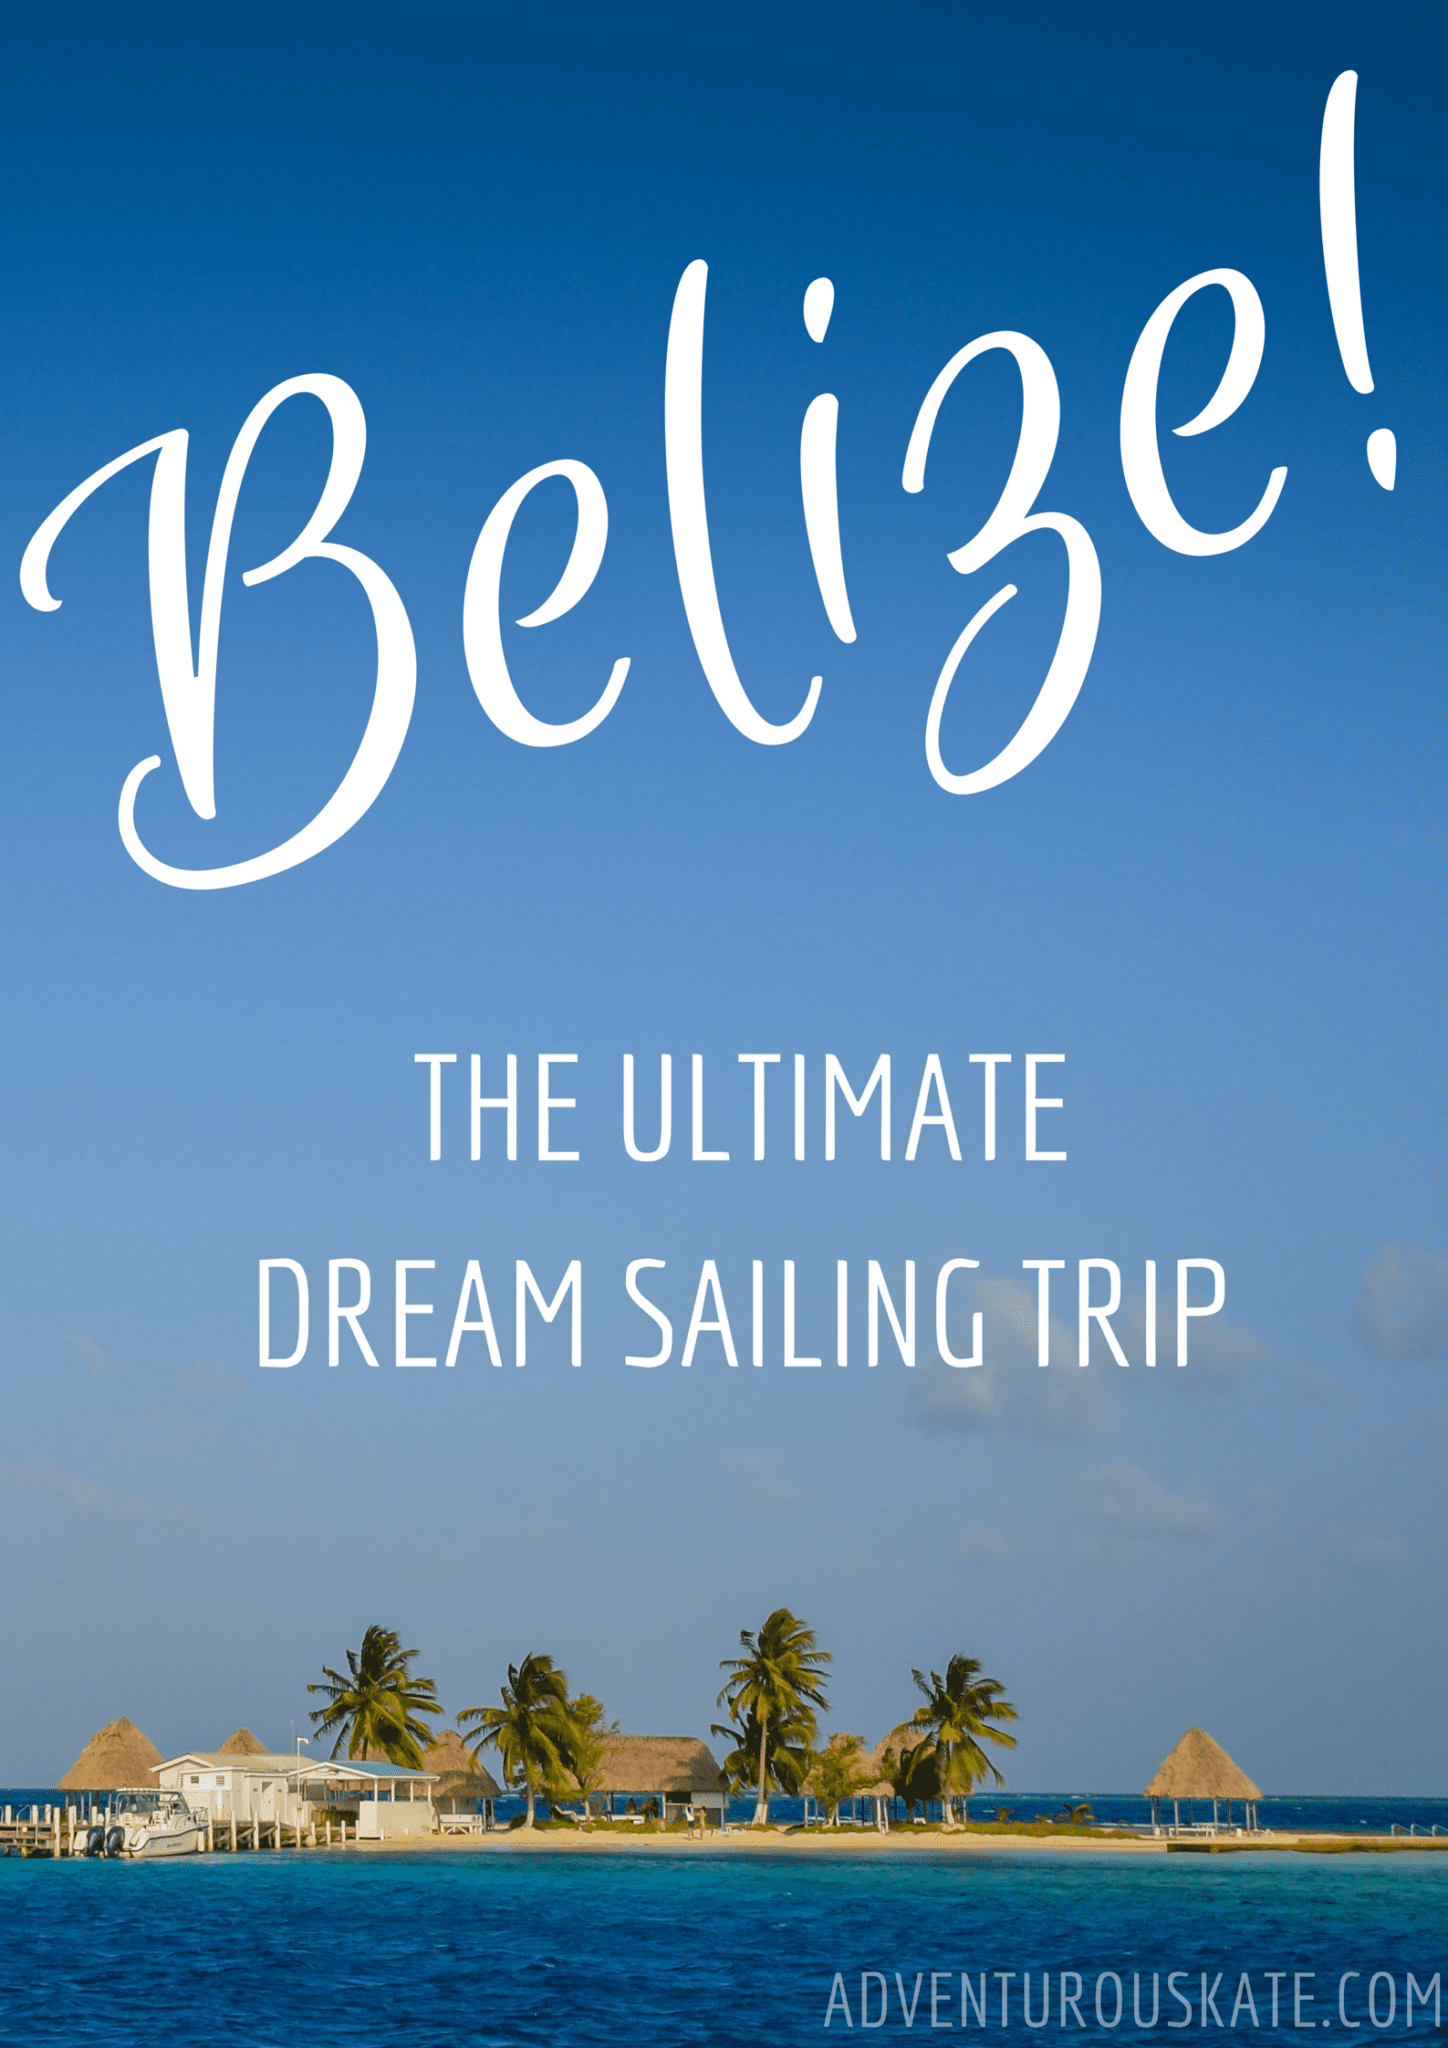 Belize! The Ultimate Dream Sailing Trip. Via Adventurous Kate